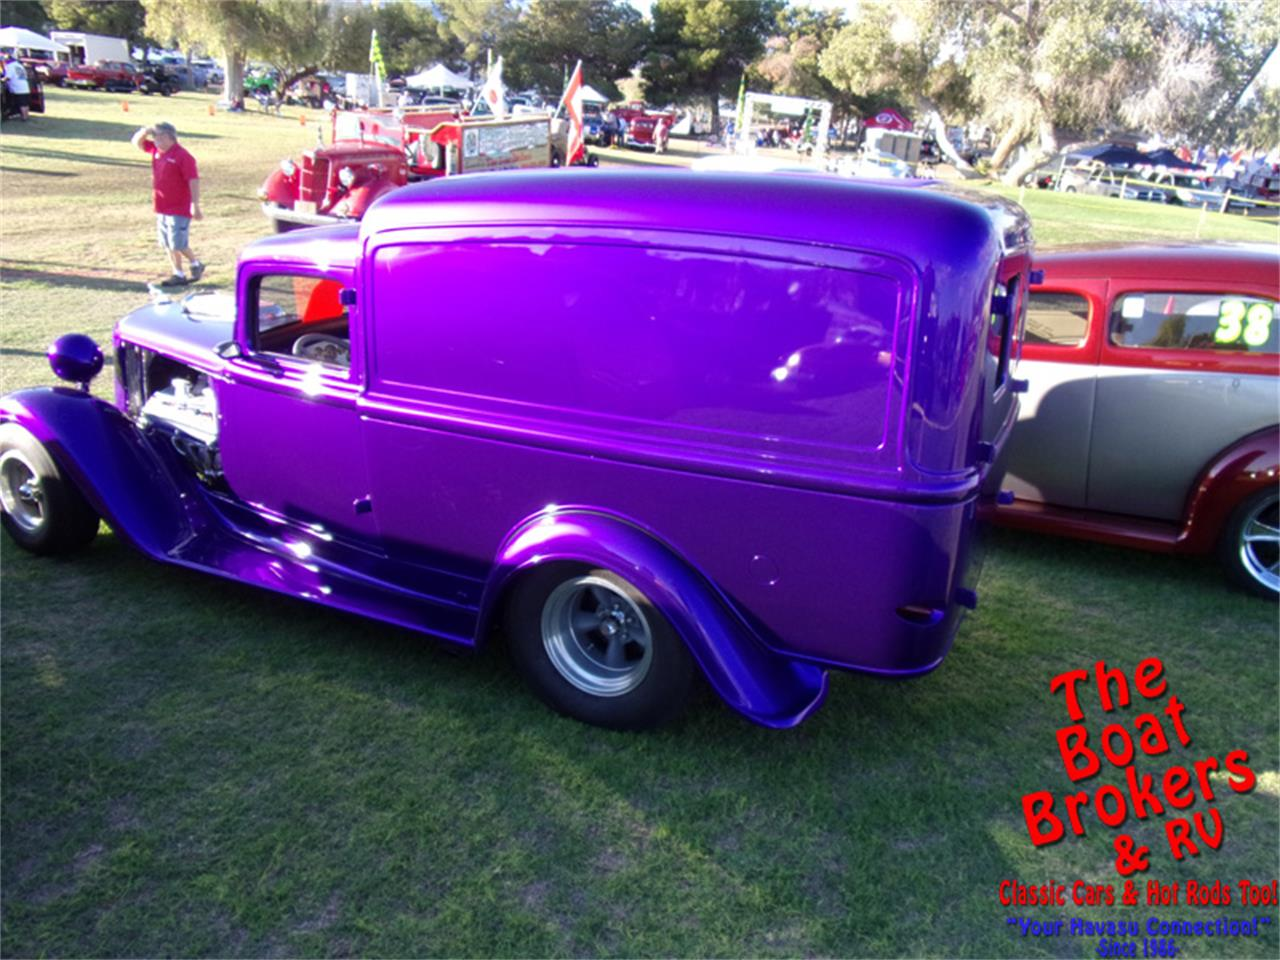 Large Picture of 1934 Dodge D100 located in Arizona Offered by The Boat Brokers - Q4SM